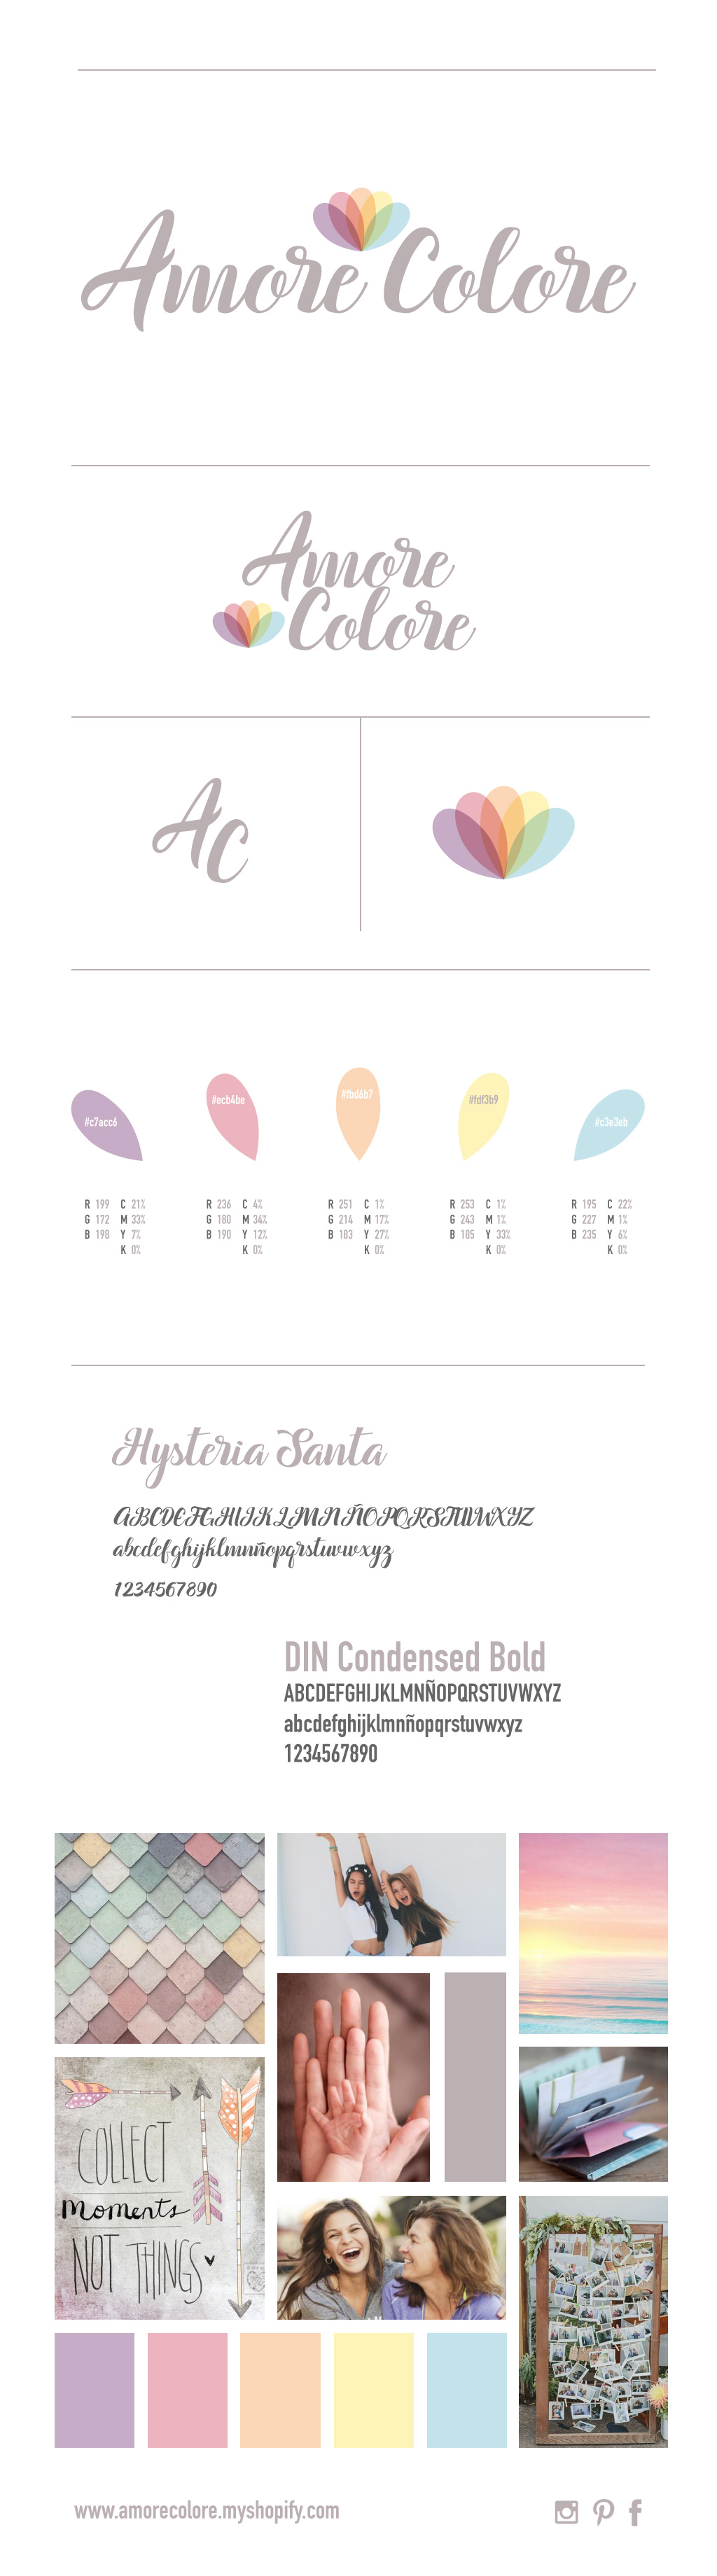 Amore Colore Brand Guide by byDaliaPamela